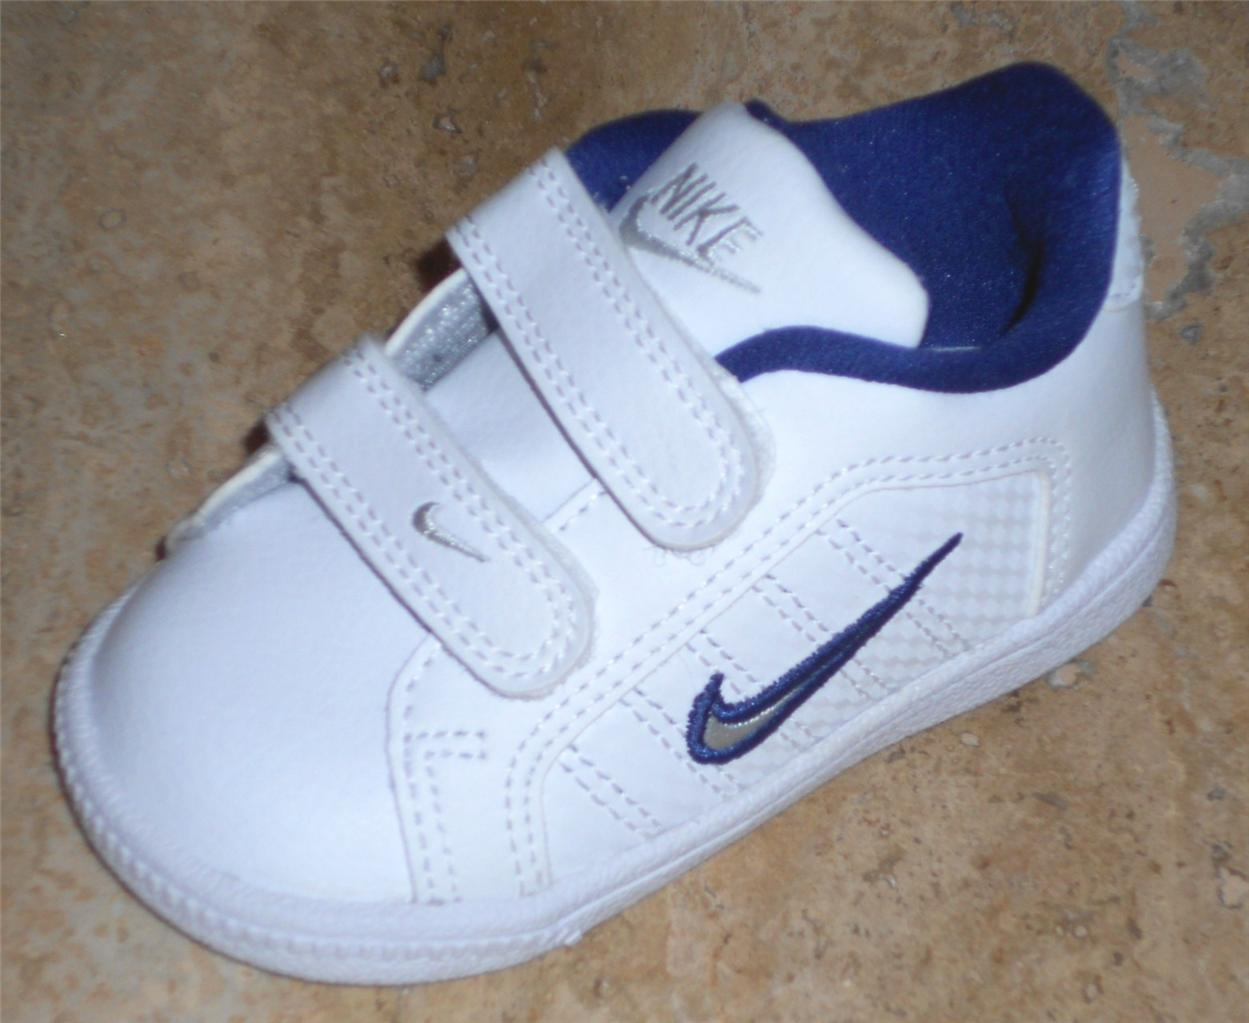 NIKE COURT TRADITION 2 PLUS INFANT BOYS LEATHER VELCRO